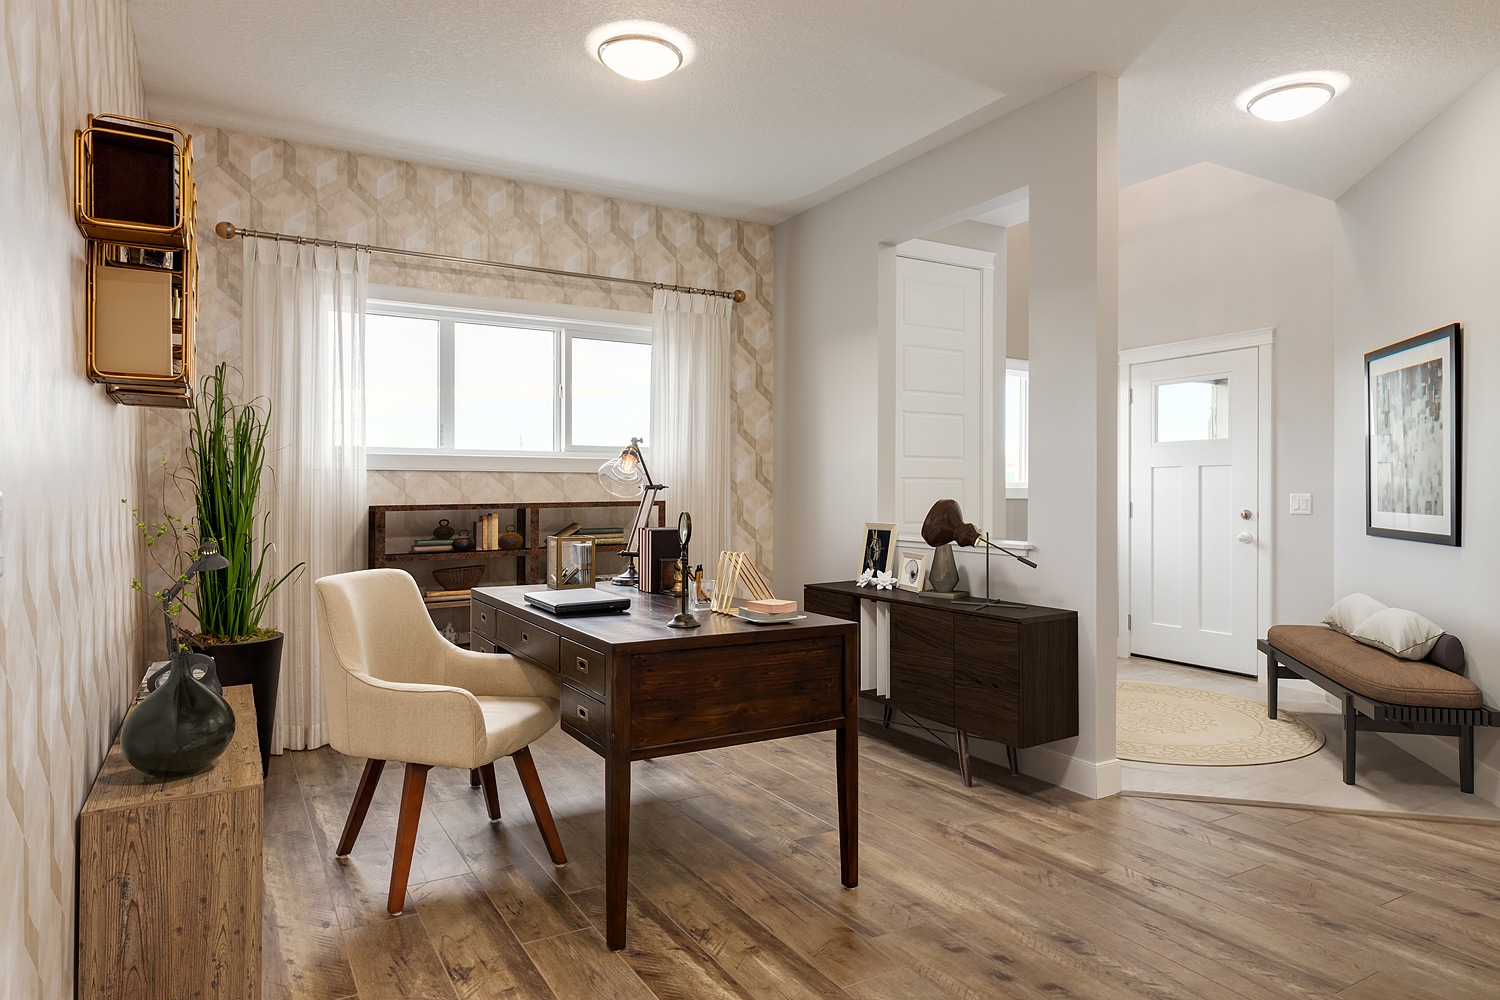 Bates Interior Design - Kingston